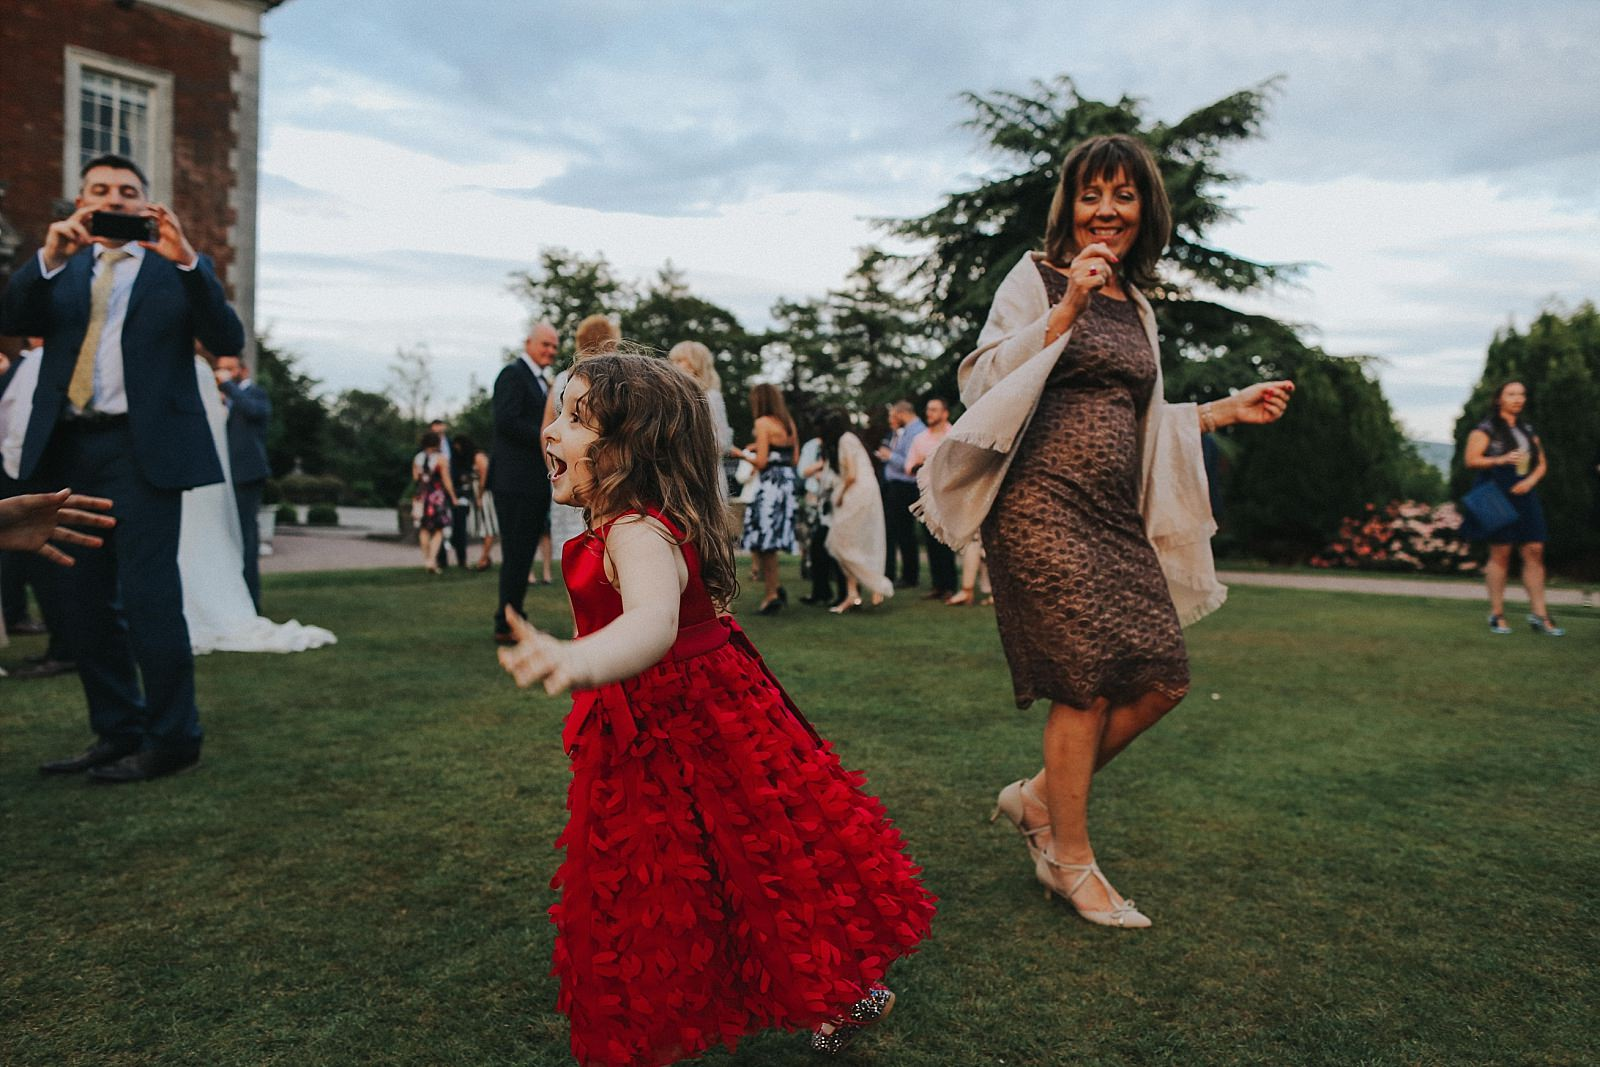 guests having fun on the lawn